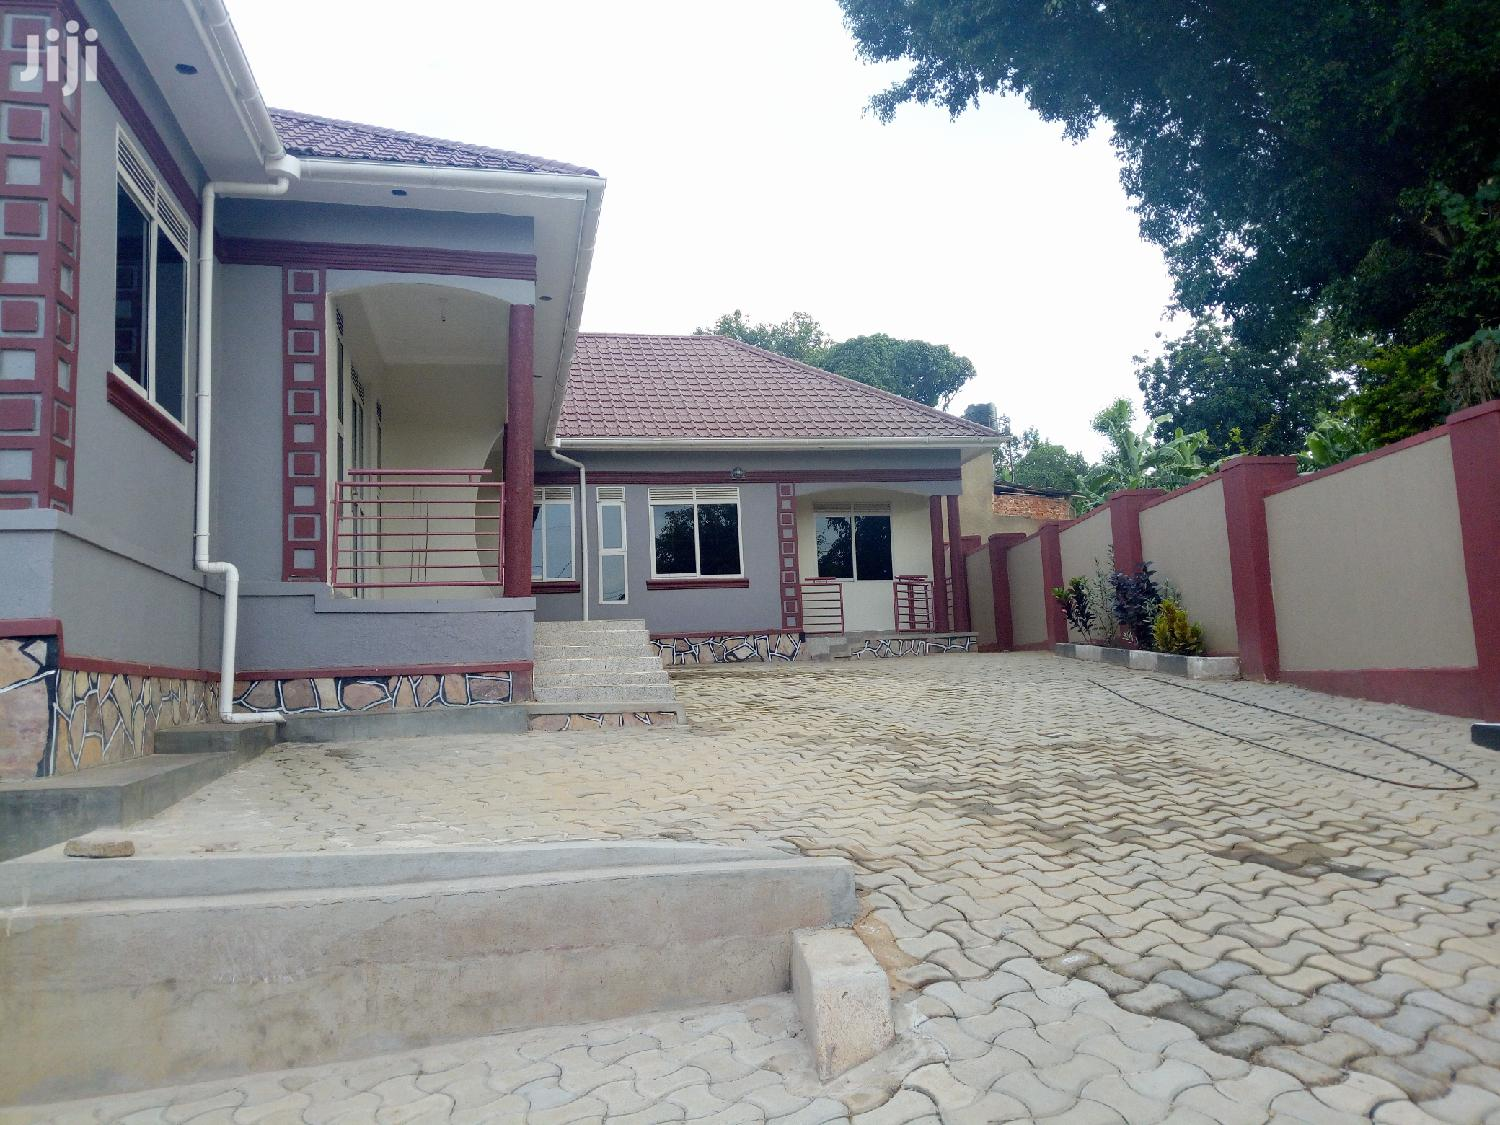 Kyanja Two Bedroom House for Rent